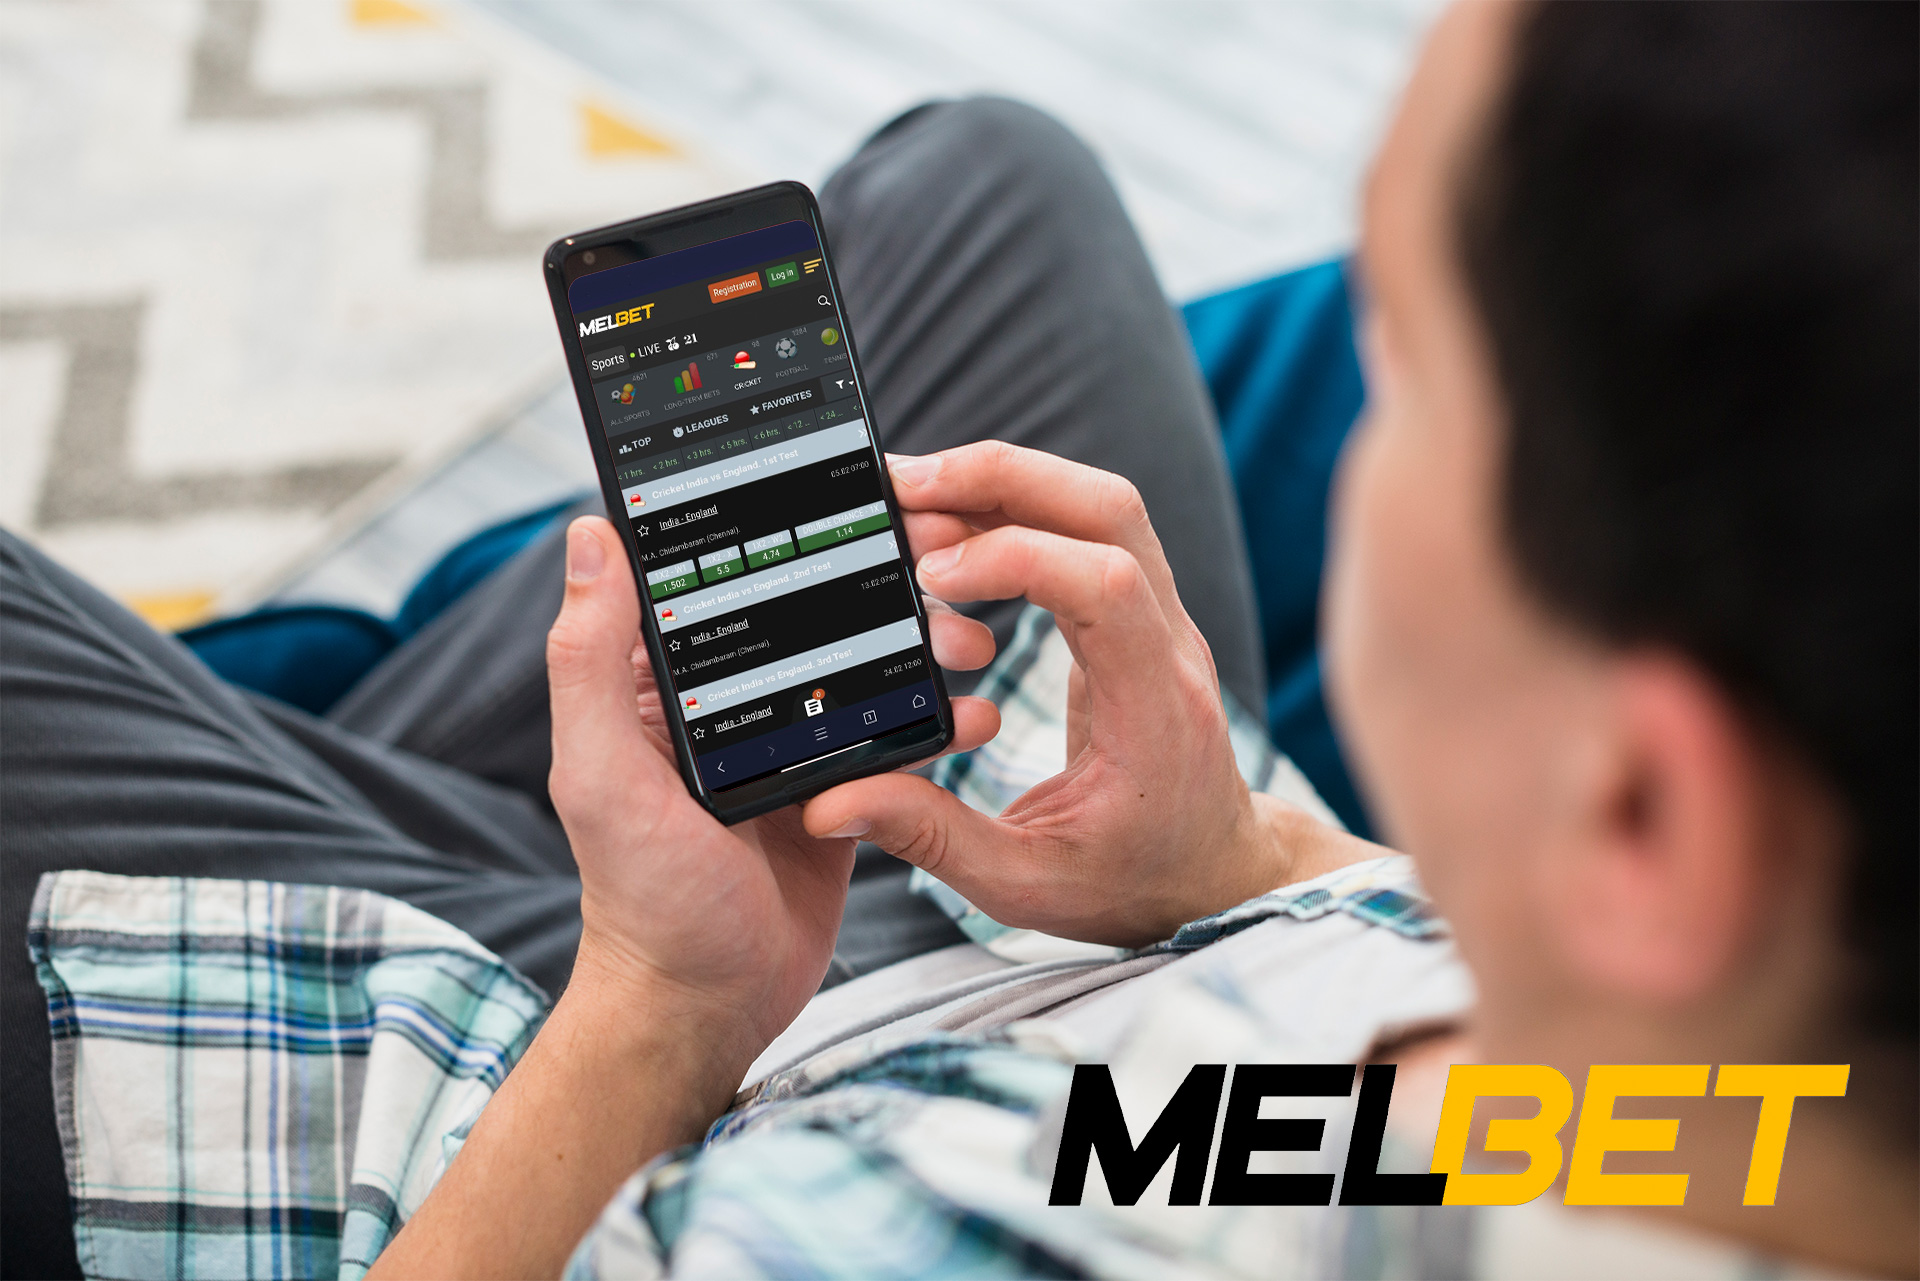 100% bonus waits you in the Melbet mobile app to start betting oc cricket.